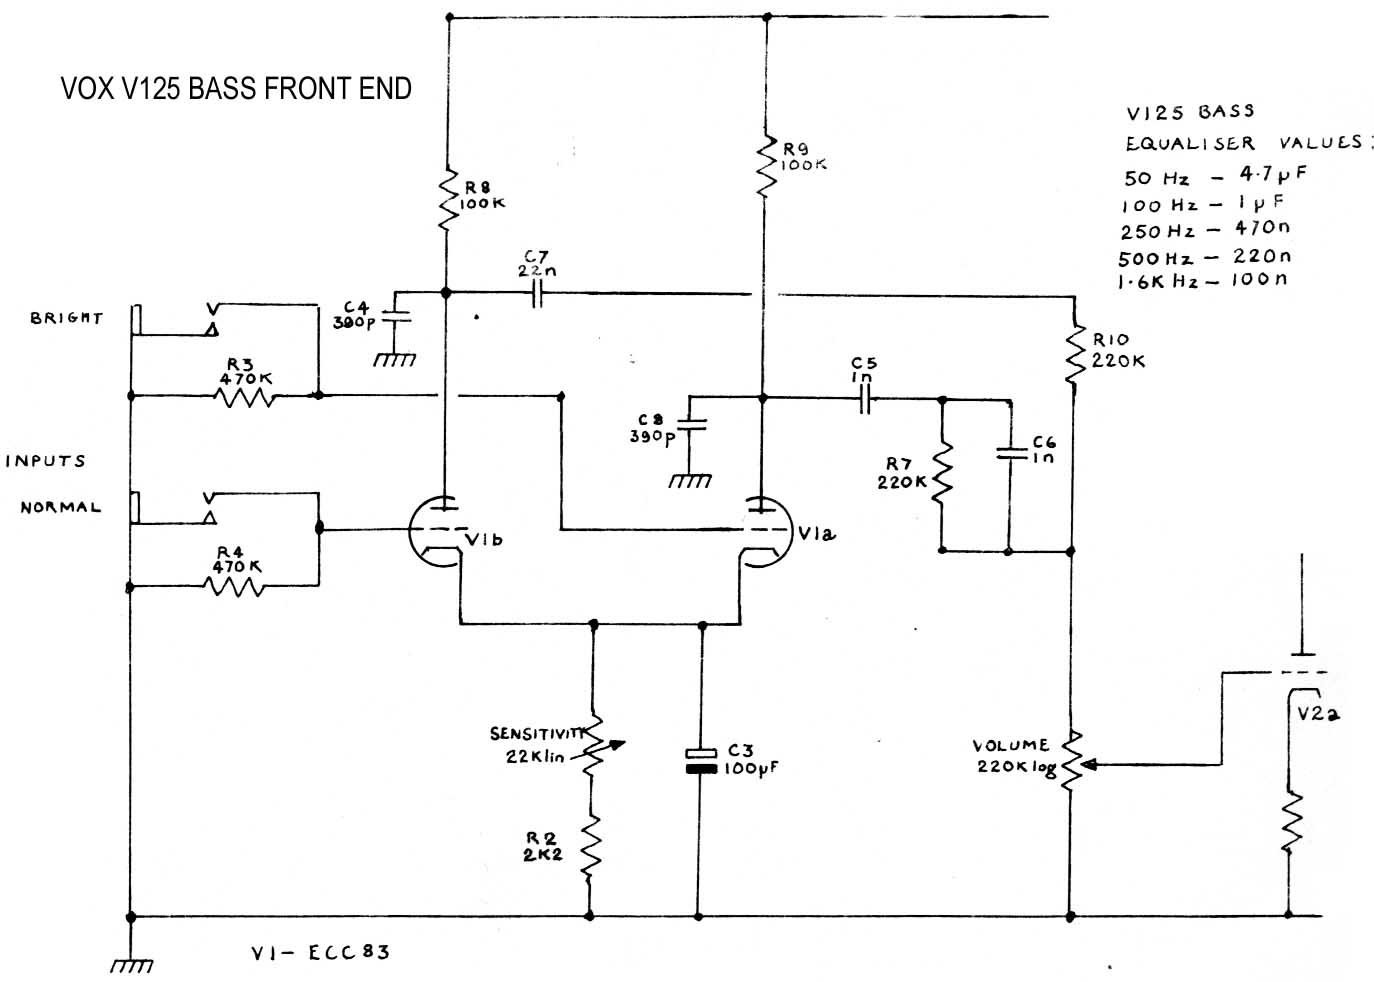 V125 Bass valve head front input stage - 1981, [ Download Diagram ]